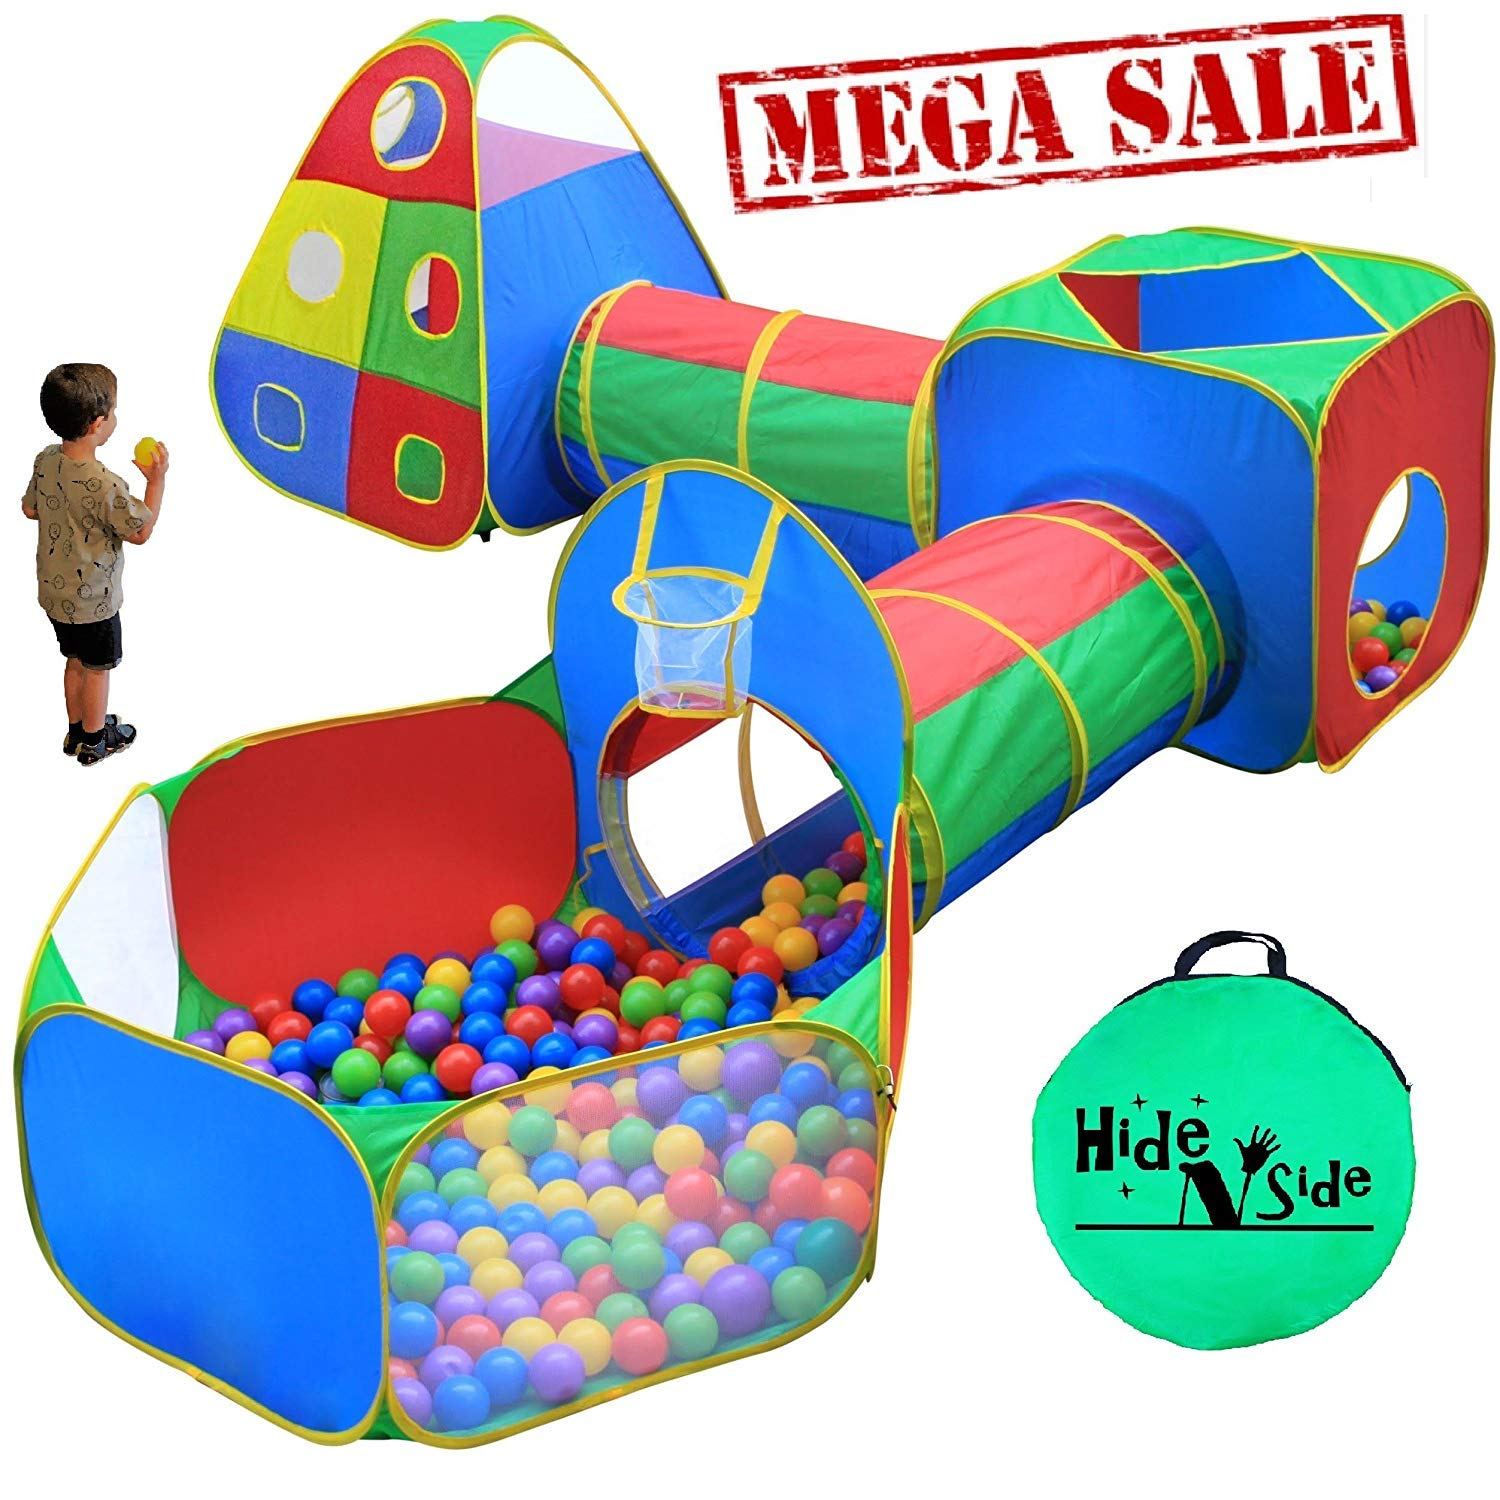 [Hide N Side] [Hide N Side 幼児用ジャングルジムプレイテント 5pc Kids Ball Pit Tents with Play Crawl Tunnel Toy , for Boys, Babies, Infants and Children, w/ Basketball Hoop, ] (並行輸入品) B07GWPXN7P One Color One Size